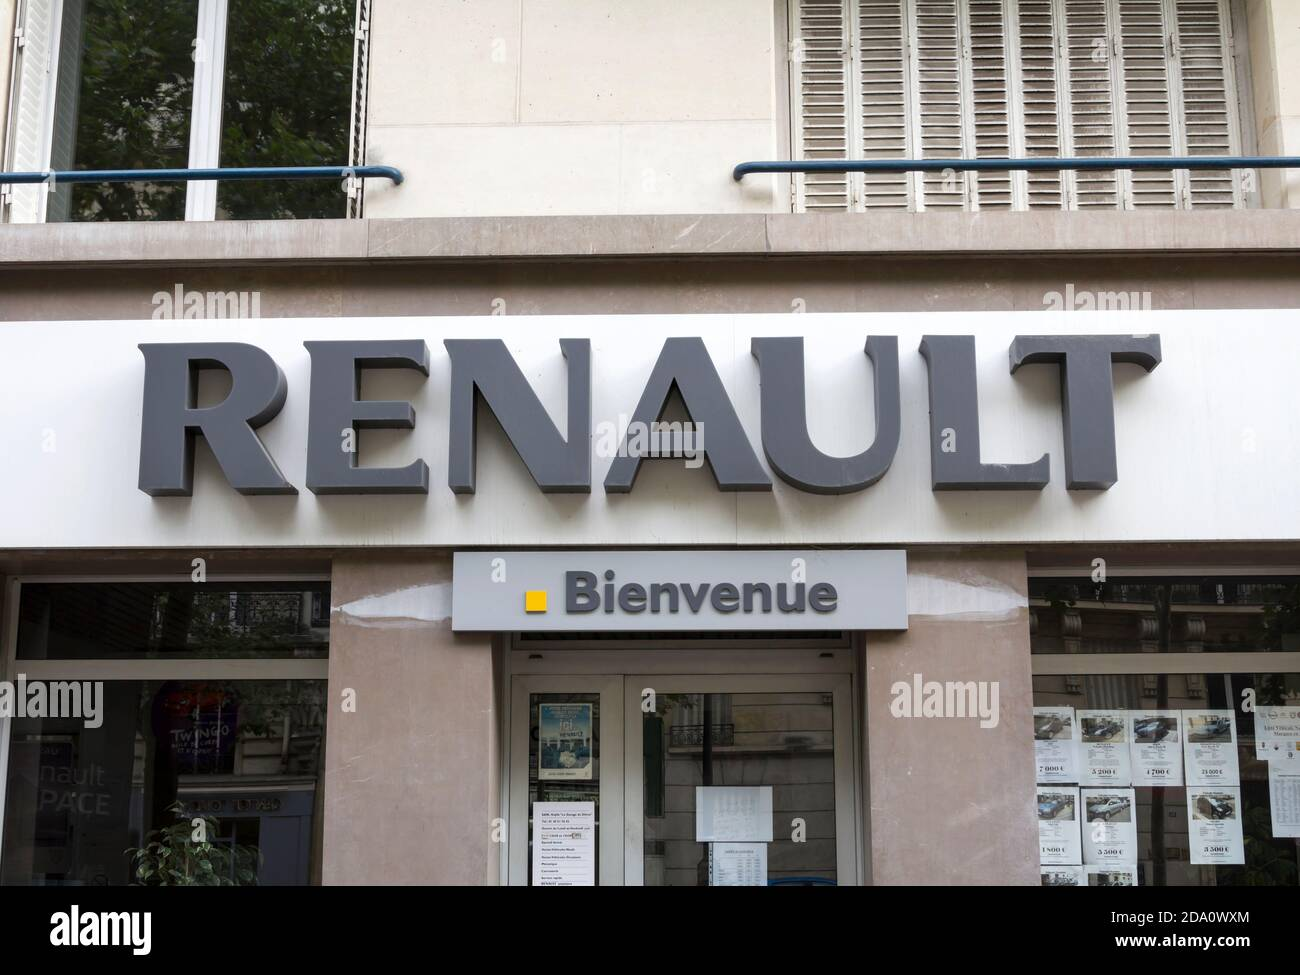 Renault logo in Paris France. Renault S.A. is a French car ...